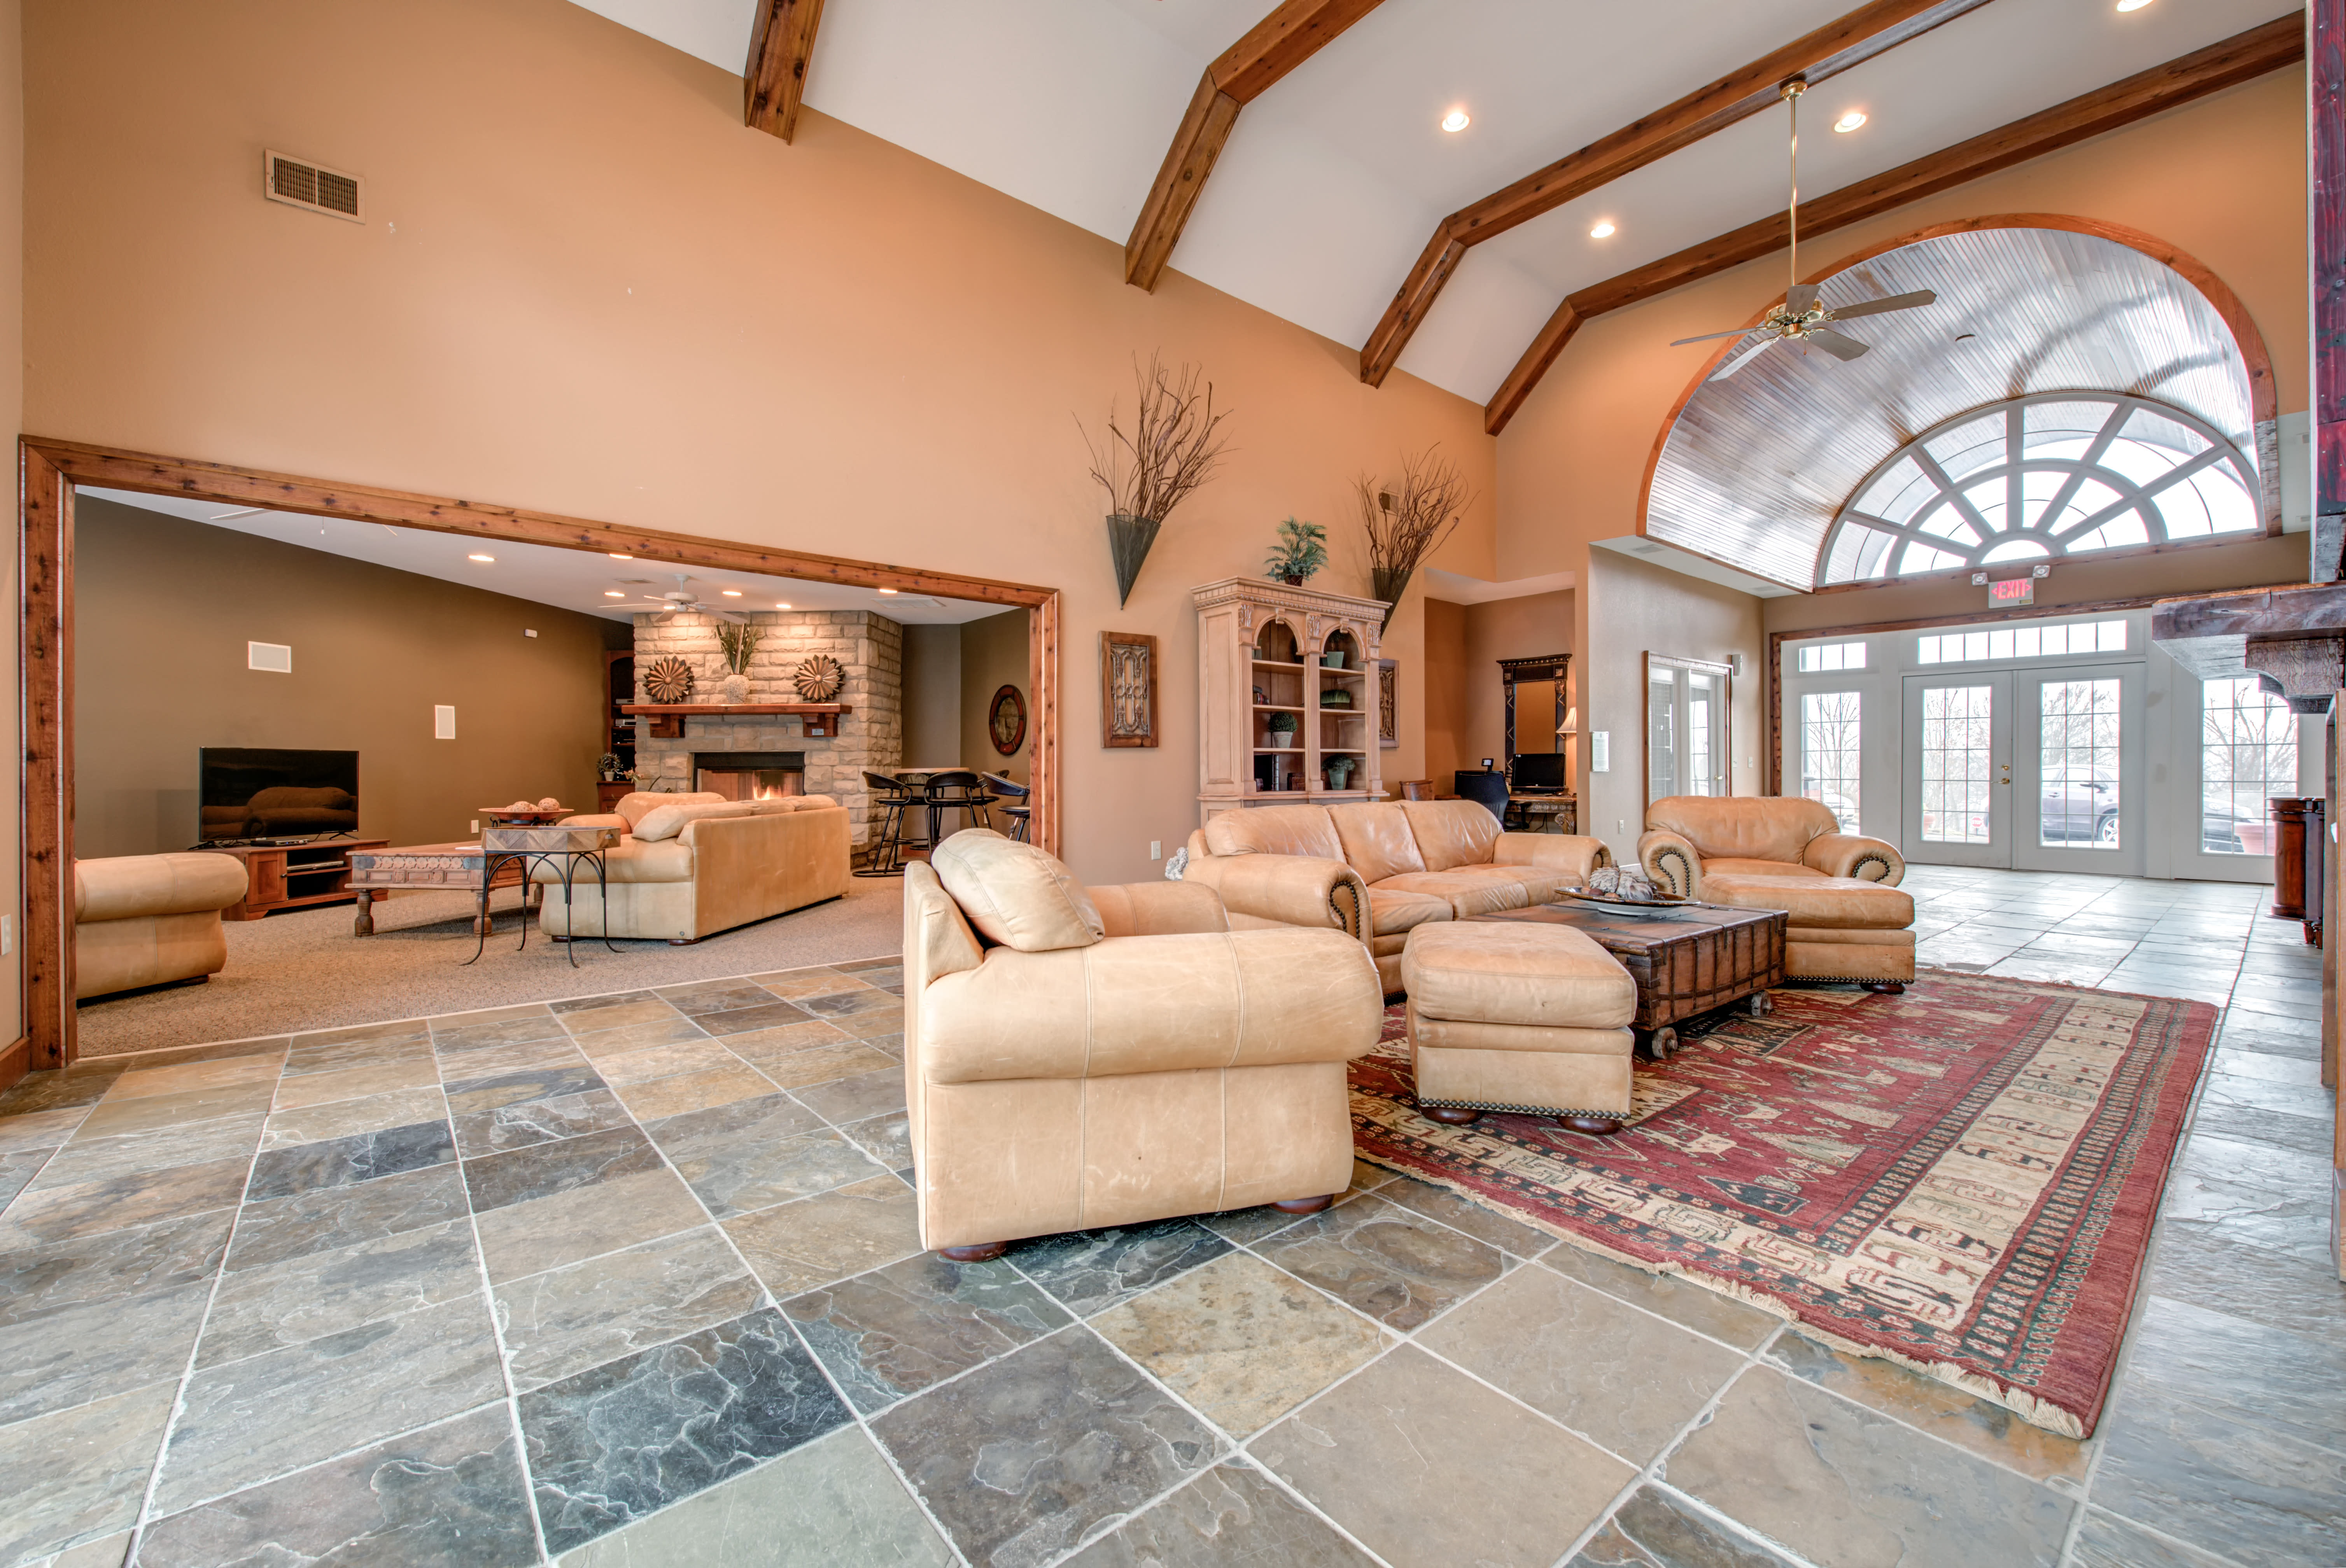 Spacious Common Area at Renaissance St. Andrews in Louisville, Kentucky.